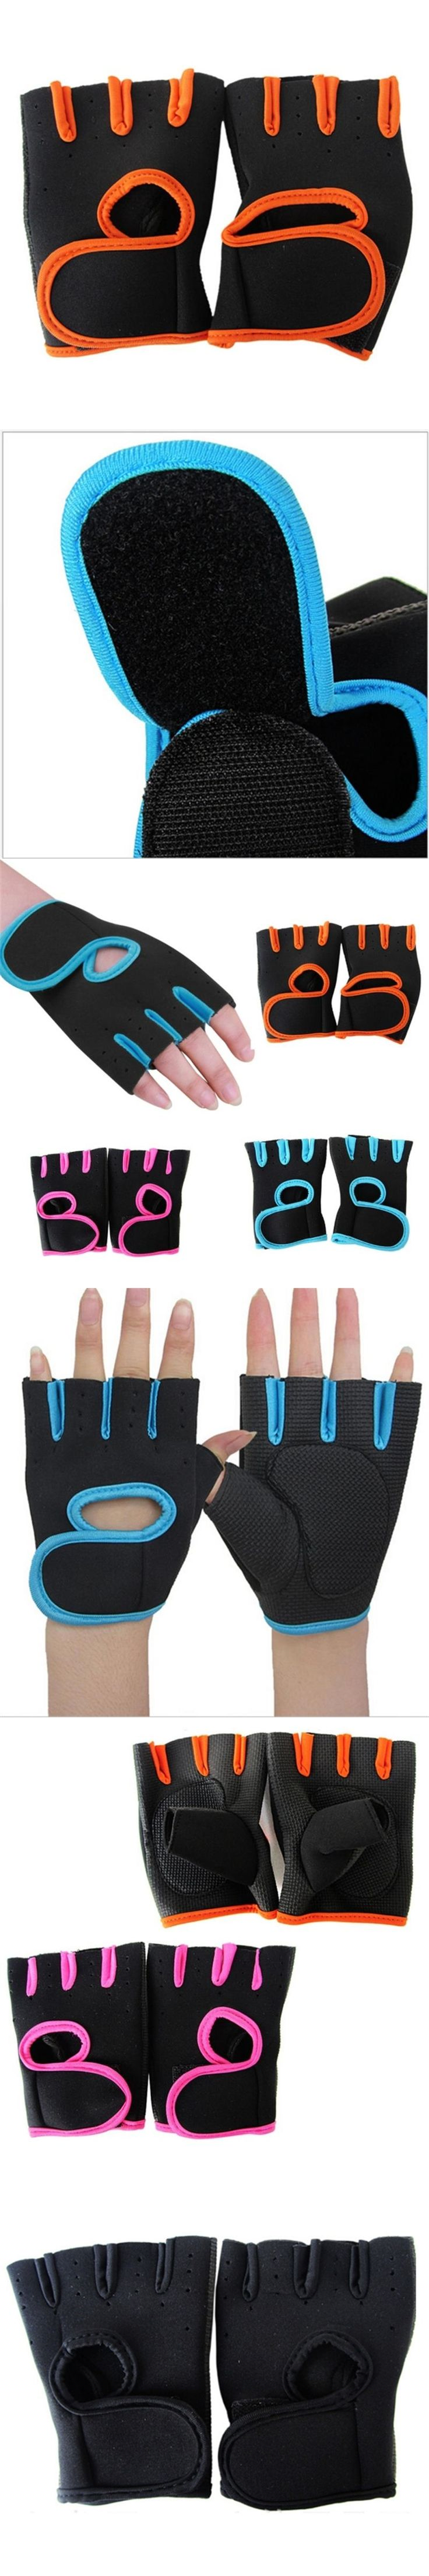 Quality Guarantee Men Women's Fitness Exercise Workout Weight Lifting Sport Gloves Gym Training Glove